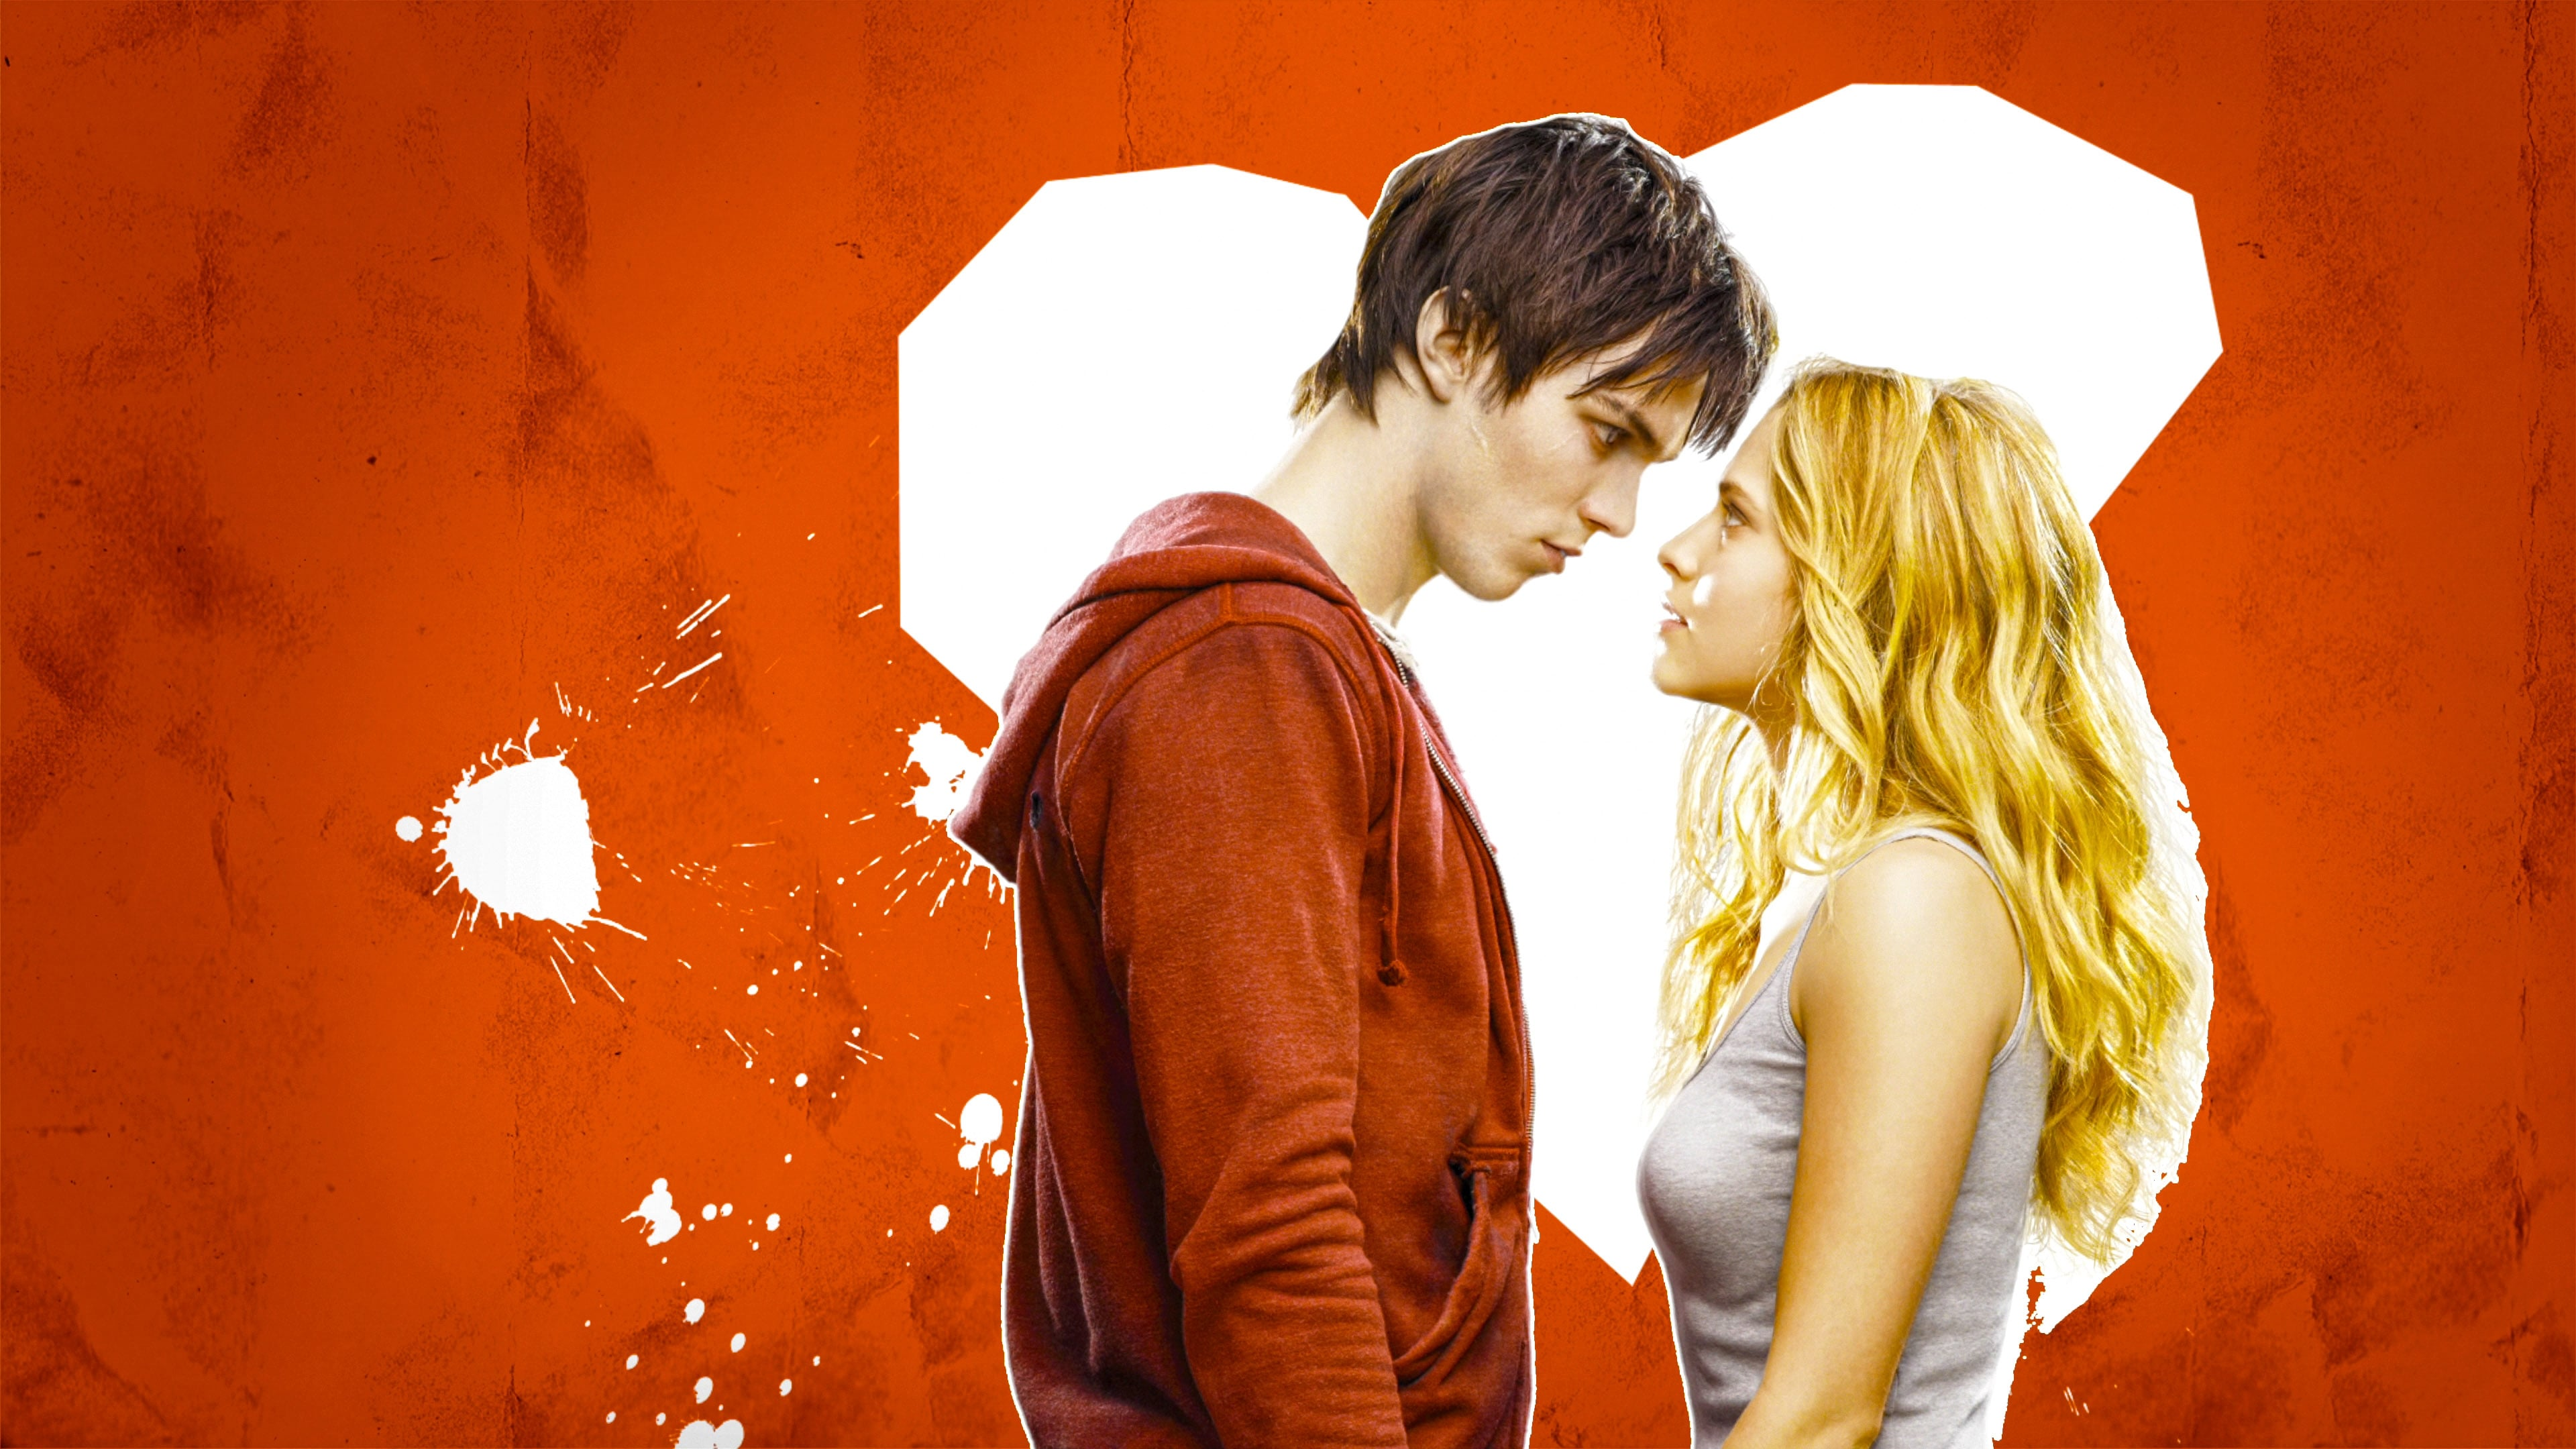 warm bodies full movie genvideos